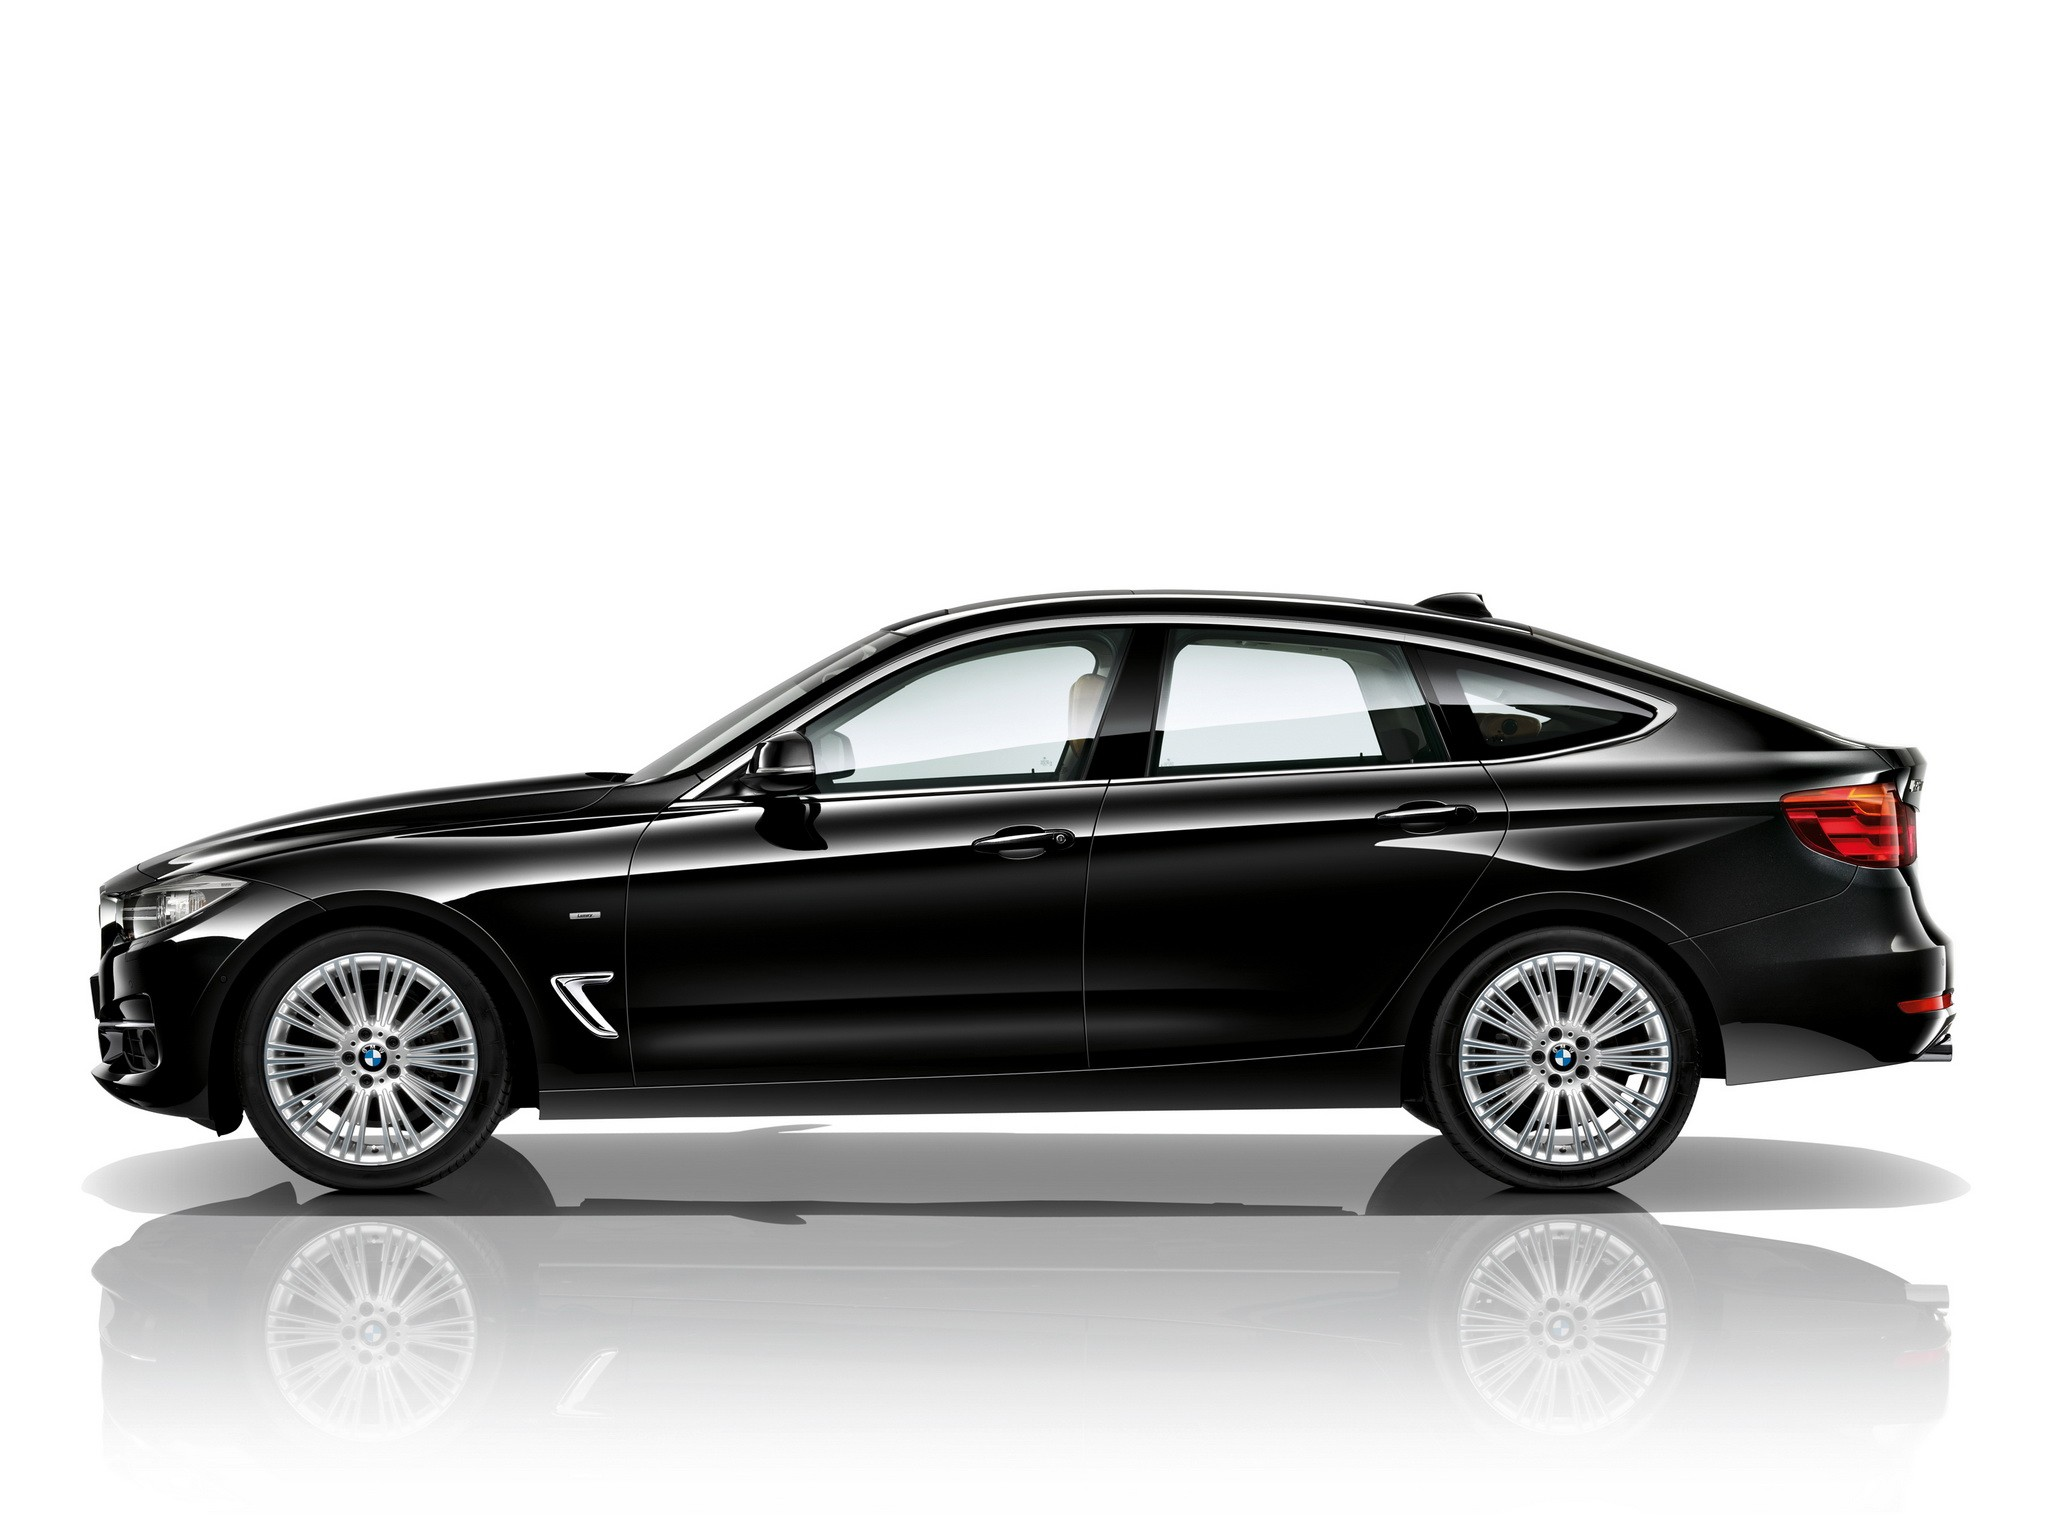 bmw 3 series gran turismo 328i 6mt 245 hp technical specs. Cars Review. Best American Auto & Cars Review